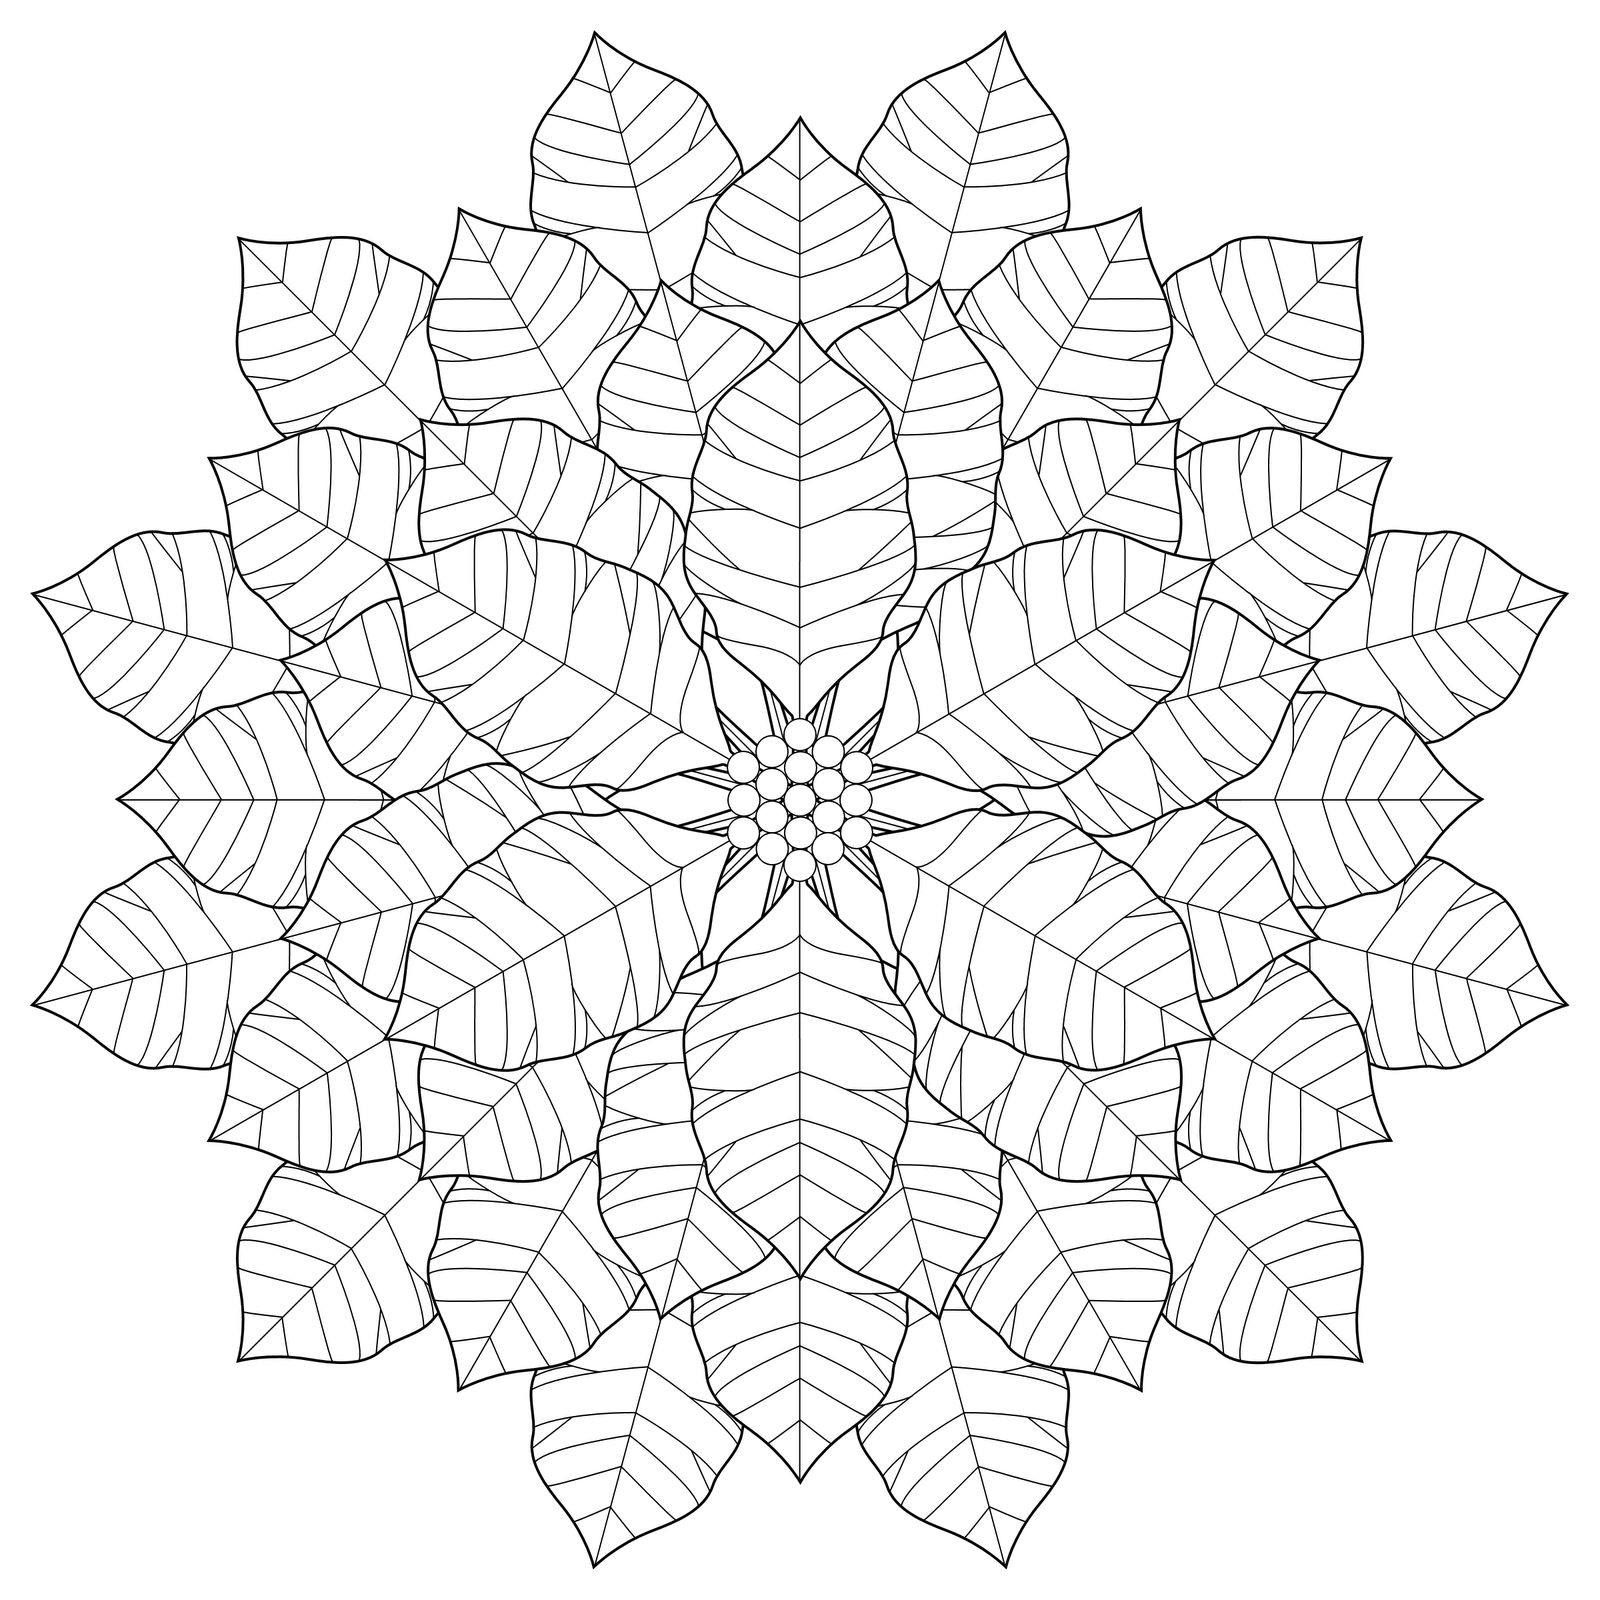 Coloring Pages Snowflake Patterns